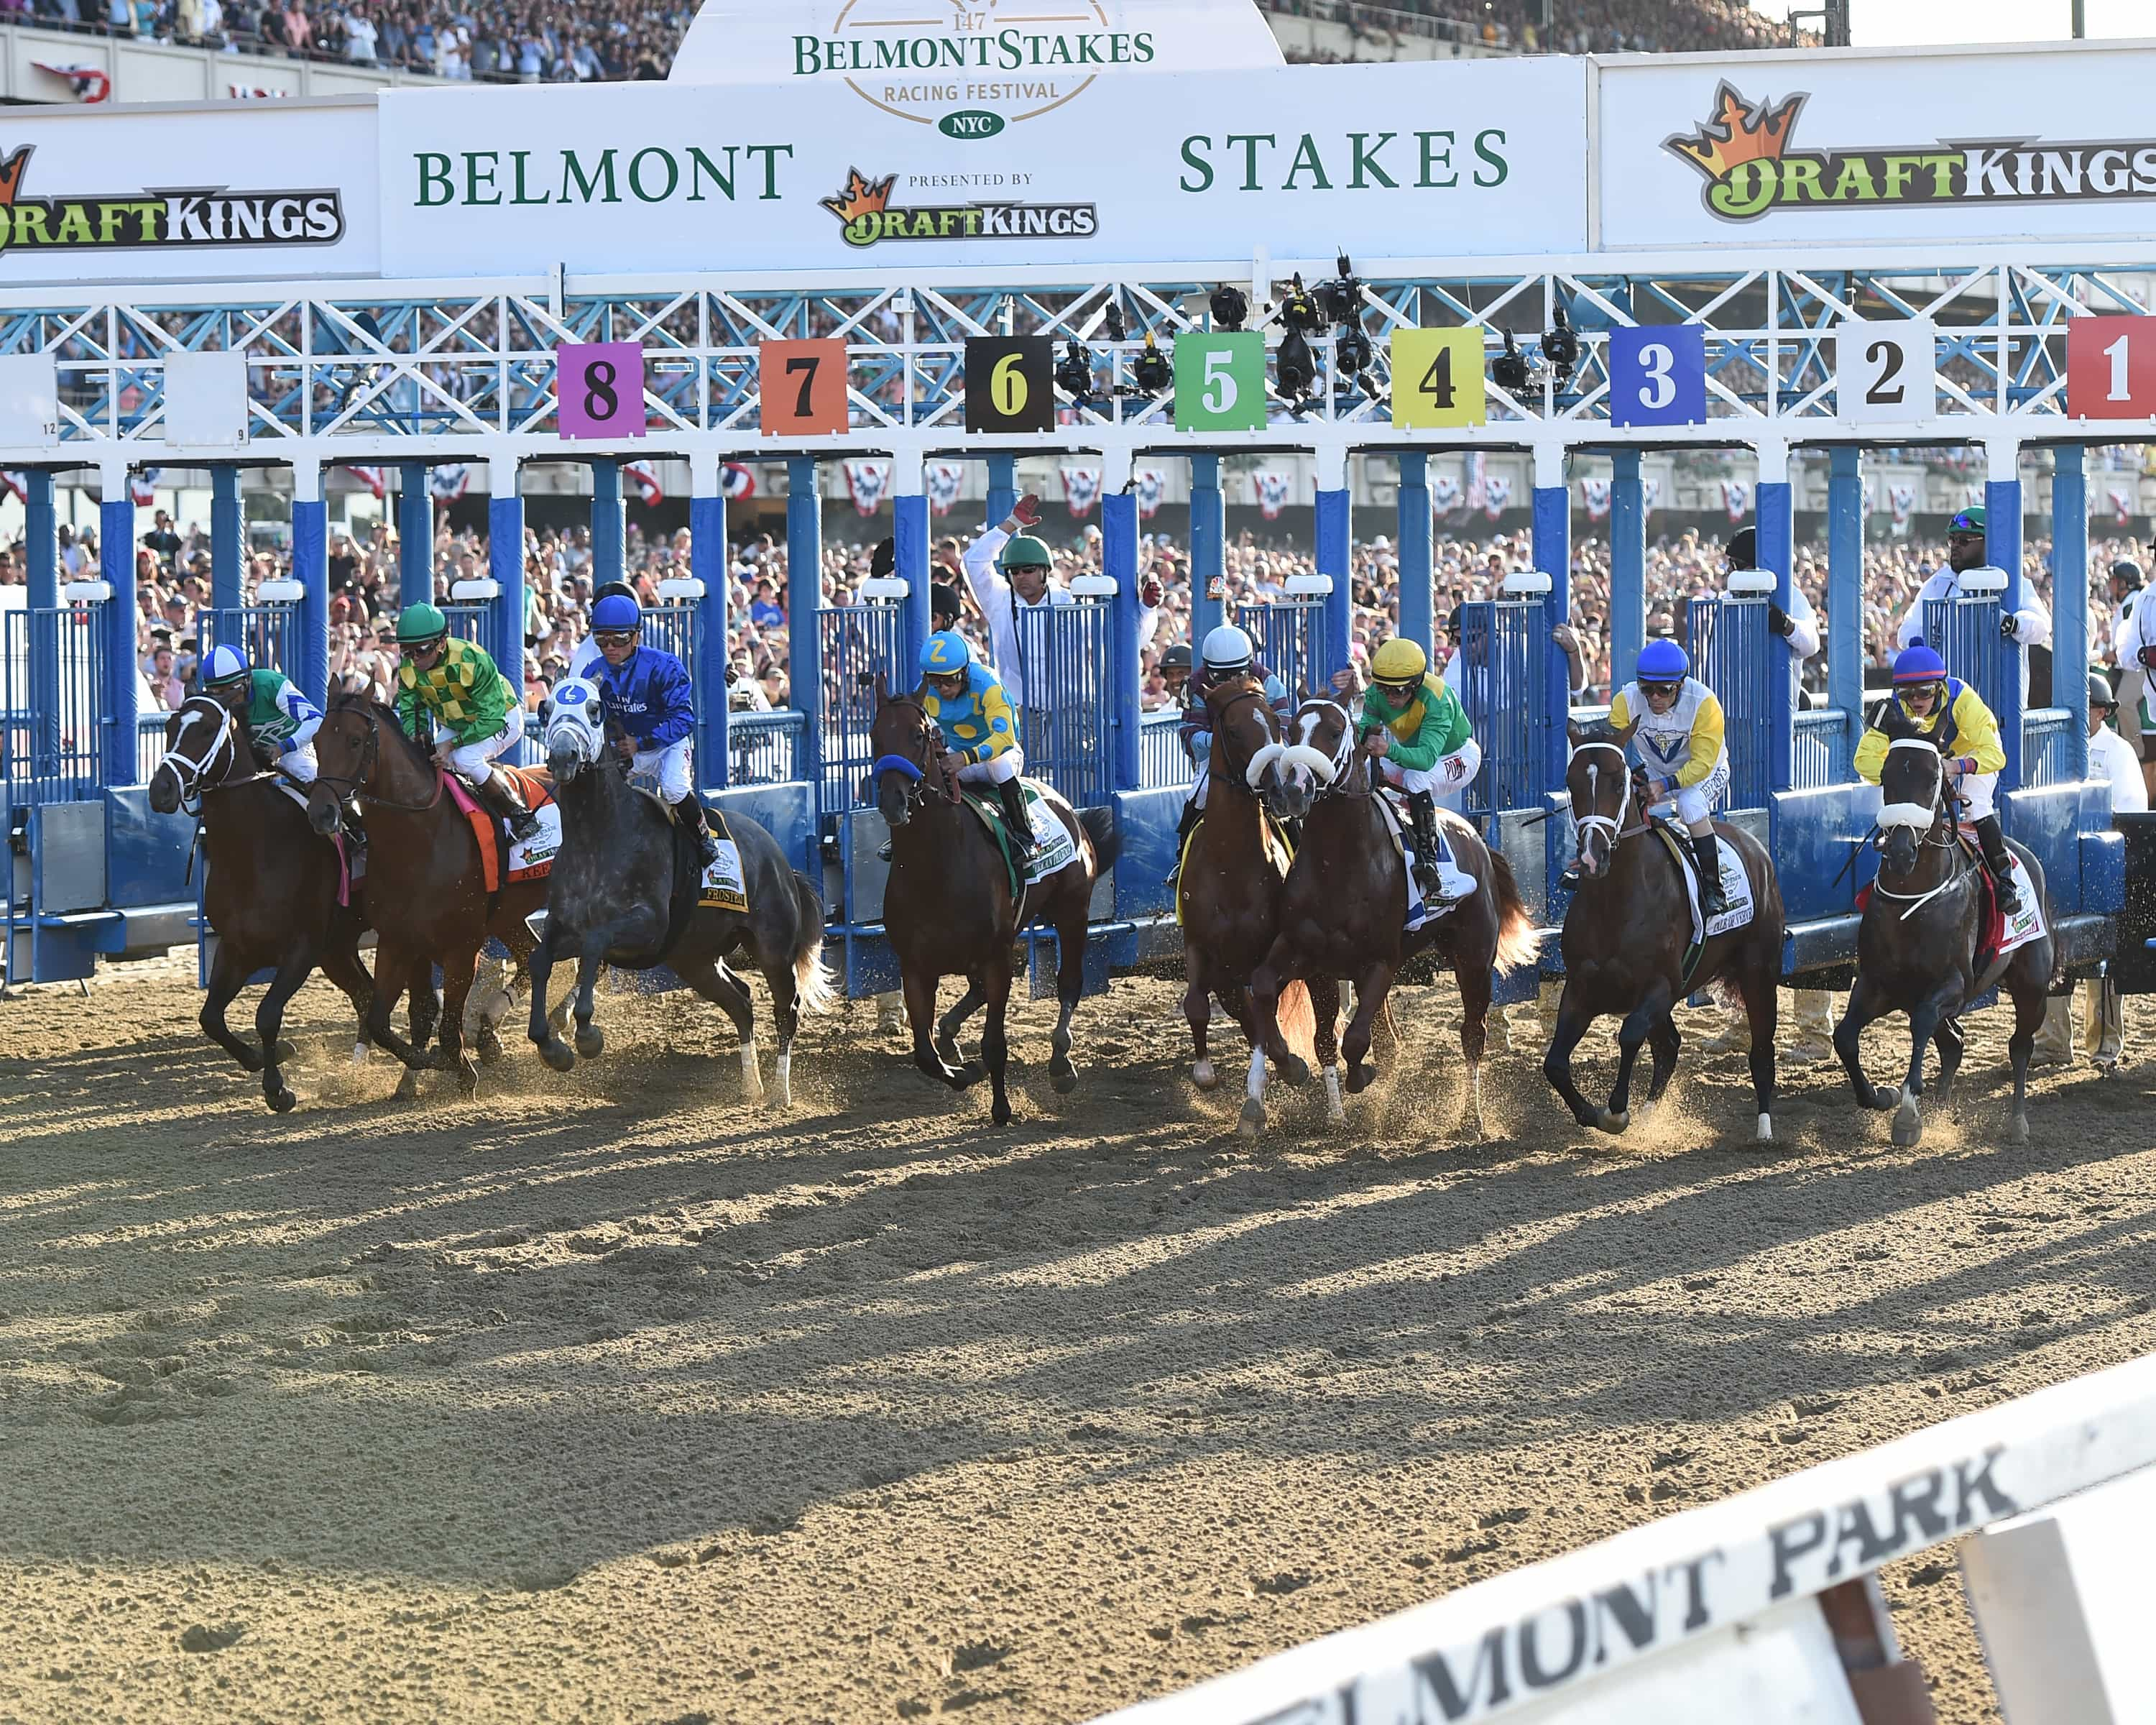 Belmont Stakes Betting Sites